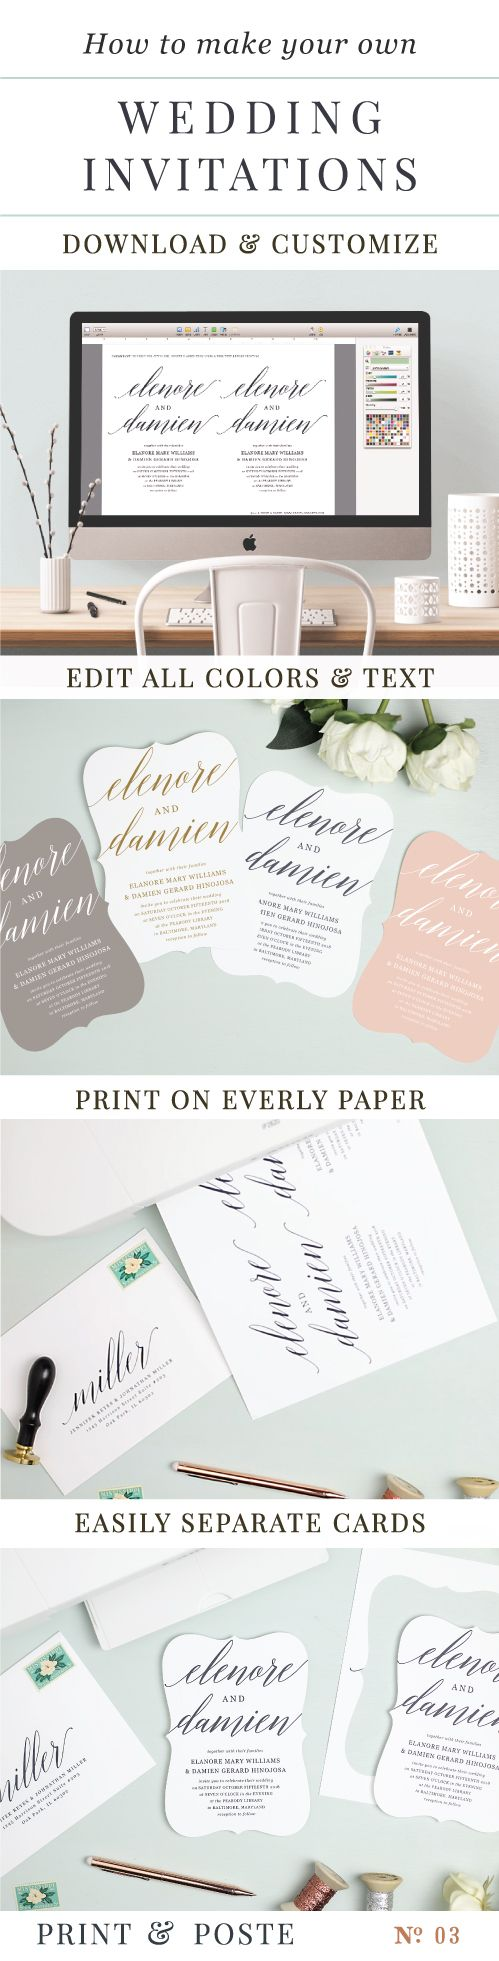 Print Your Own Wedding Invitations With Everly Paper. So Easy To Print And  Separate The